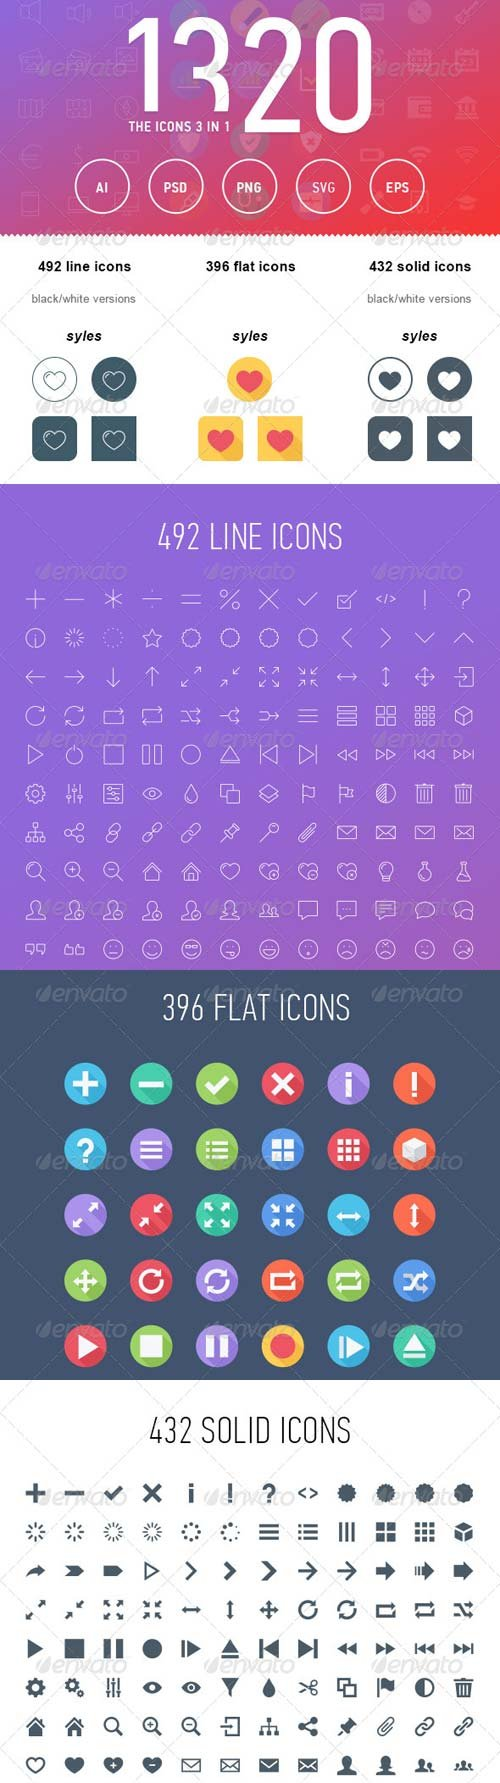 GraphicRiver The Icons 3in1 1320